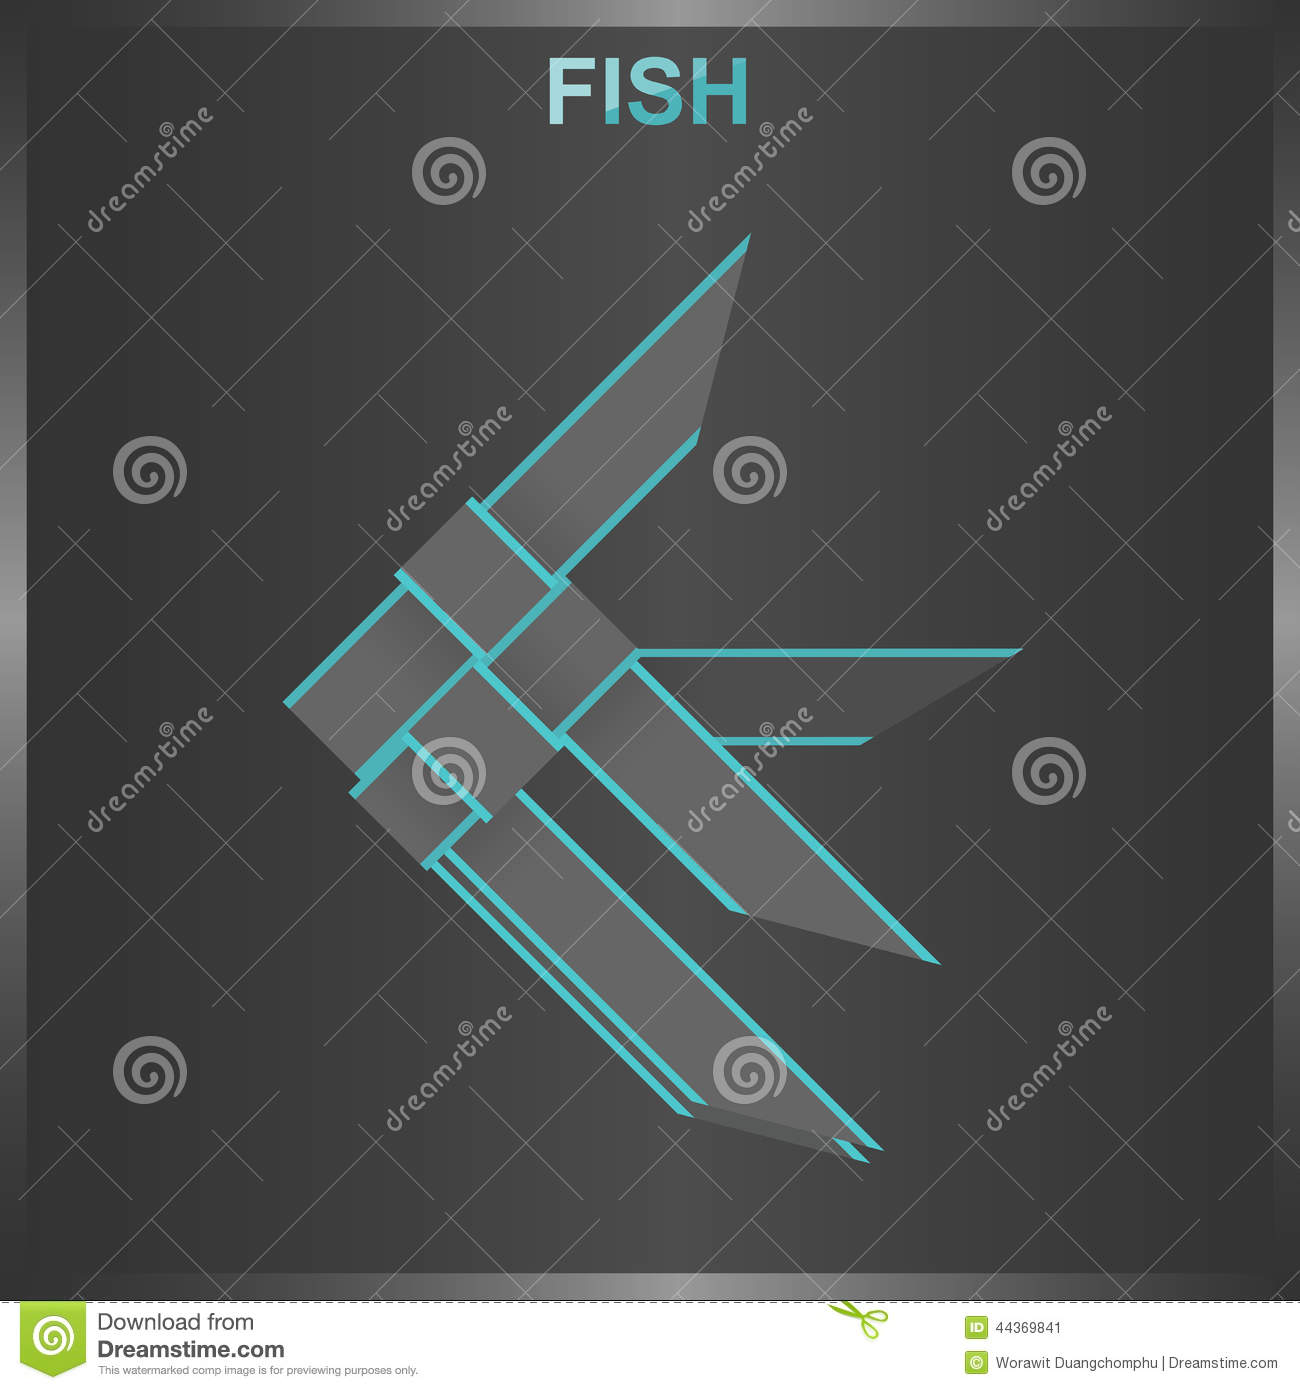 Fish weave stock vector illustration of tree together 44369841 fish weave ccuart Choice Image